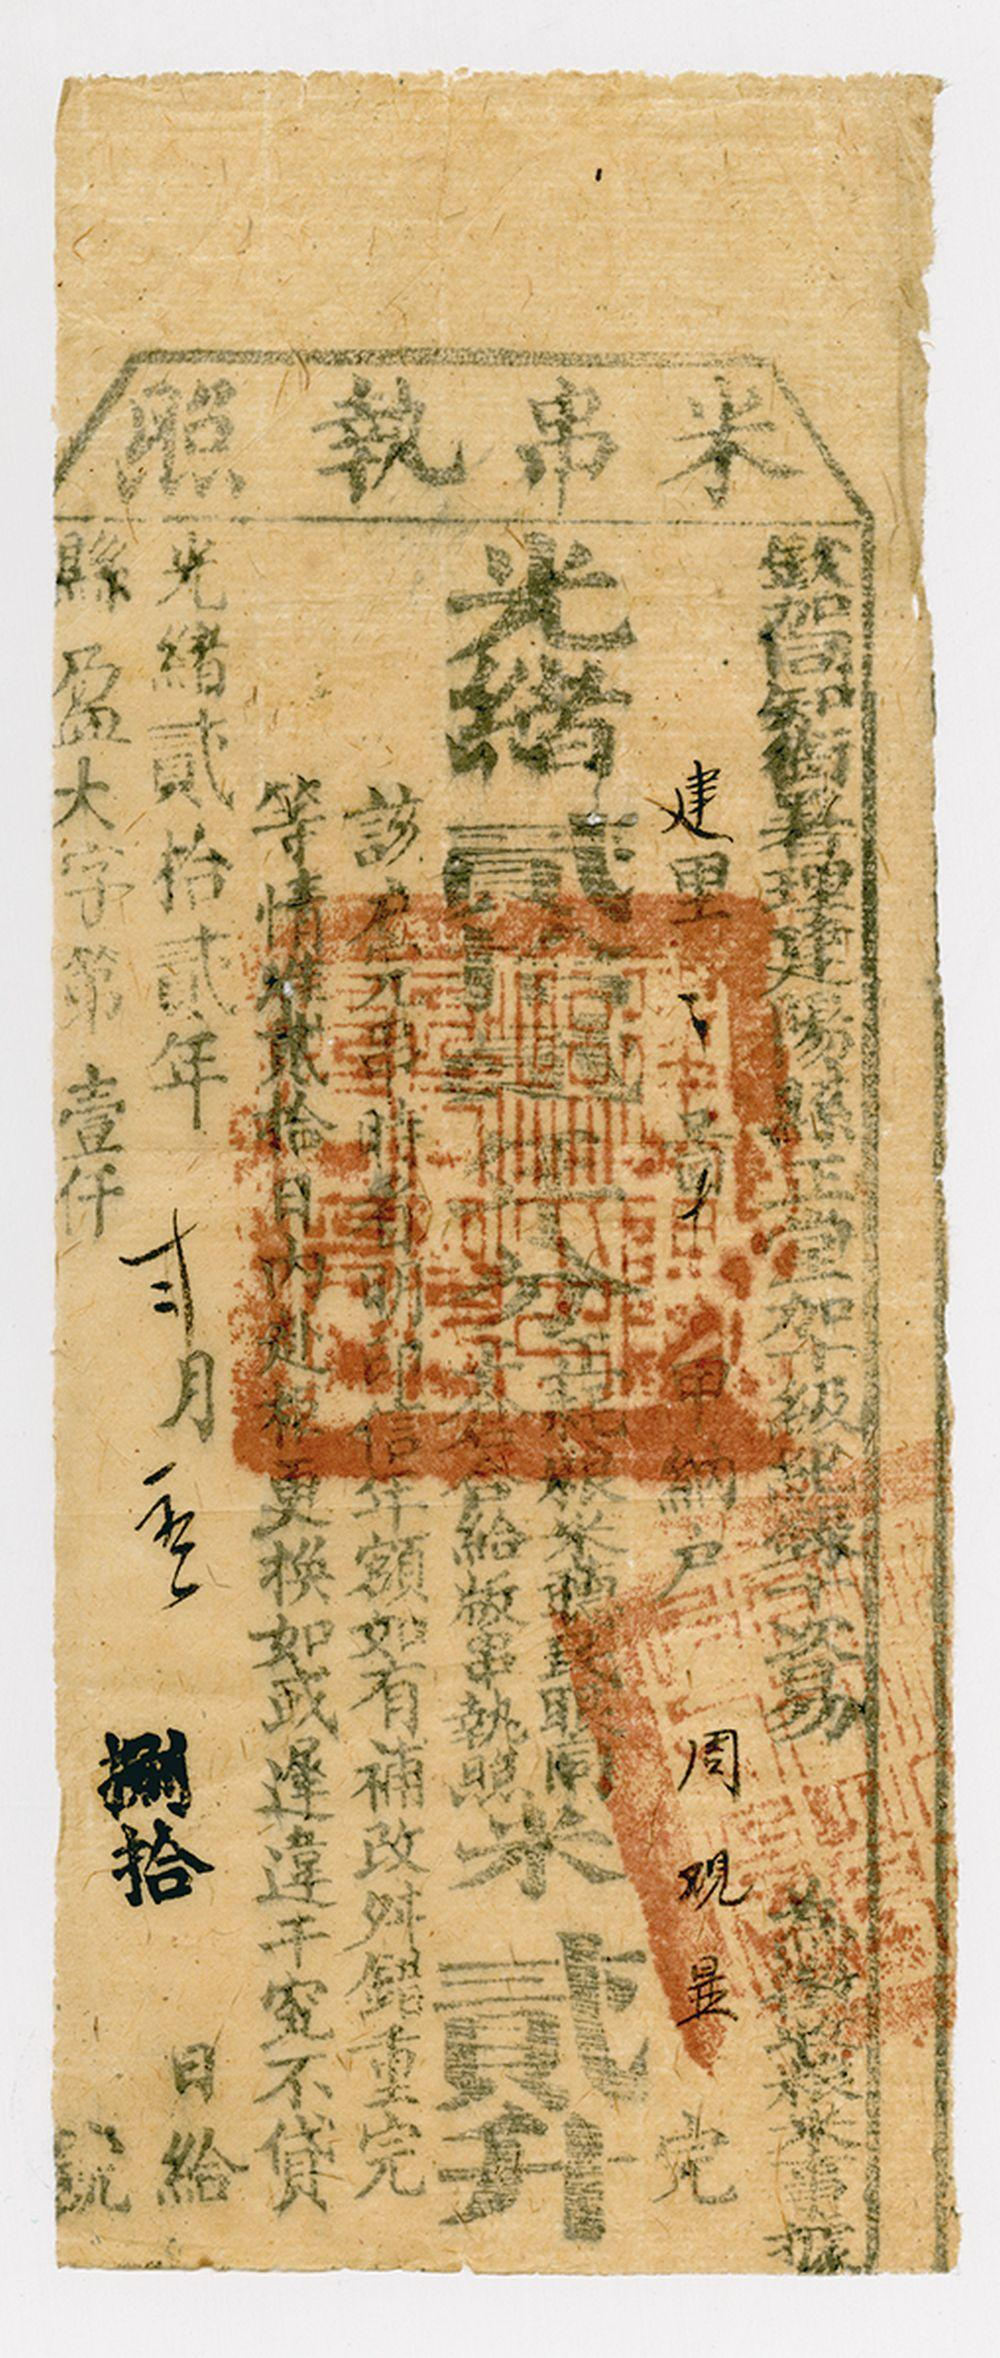 Jianyang County 1896 Rice tax receipt.